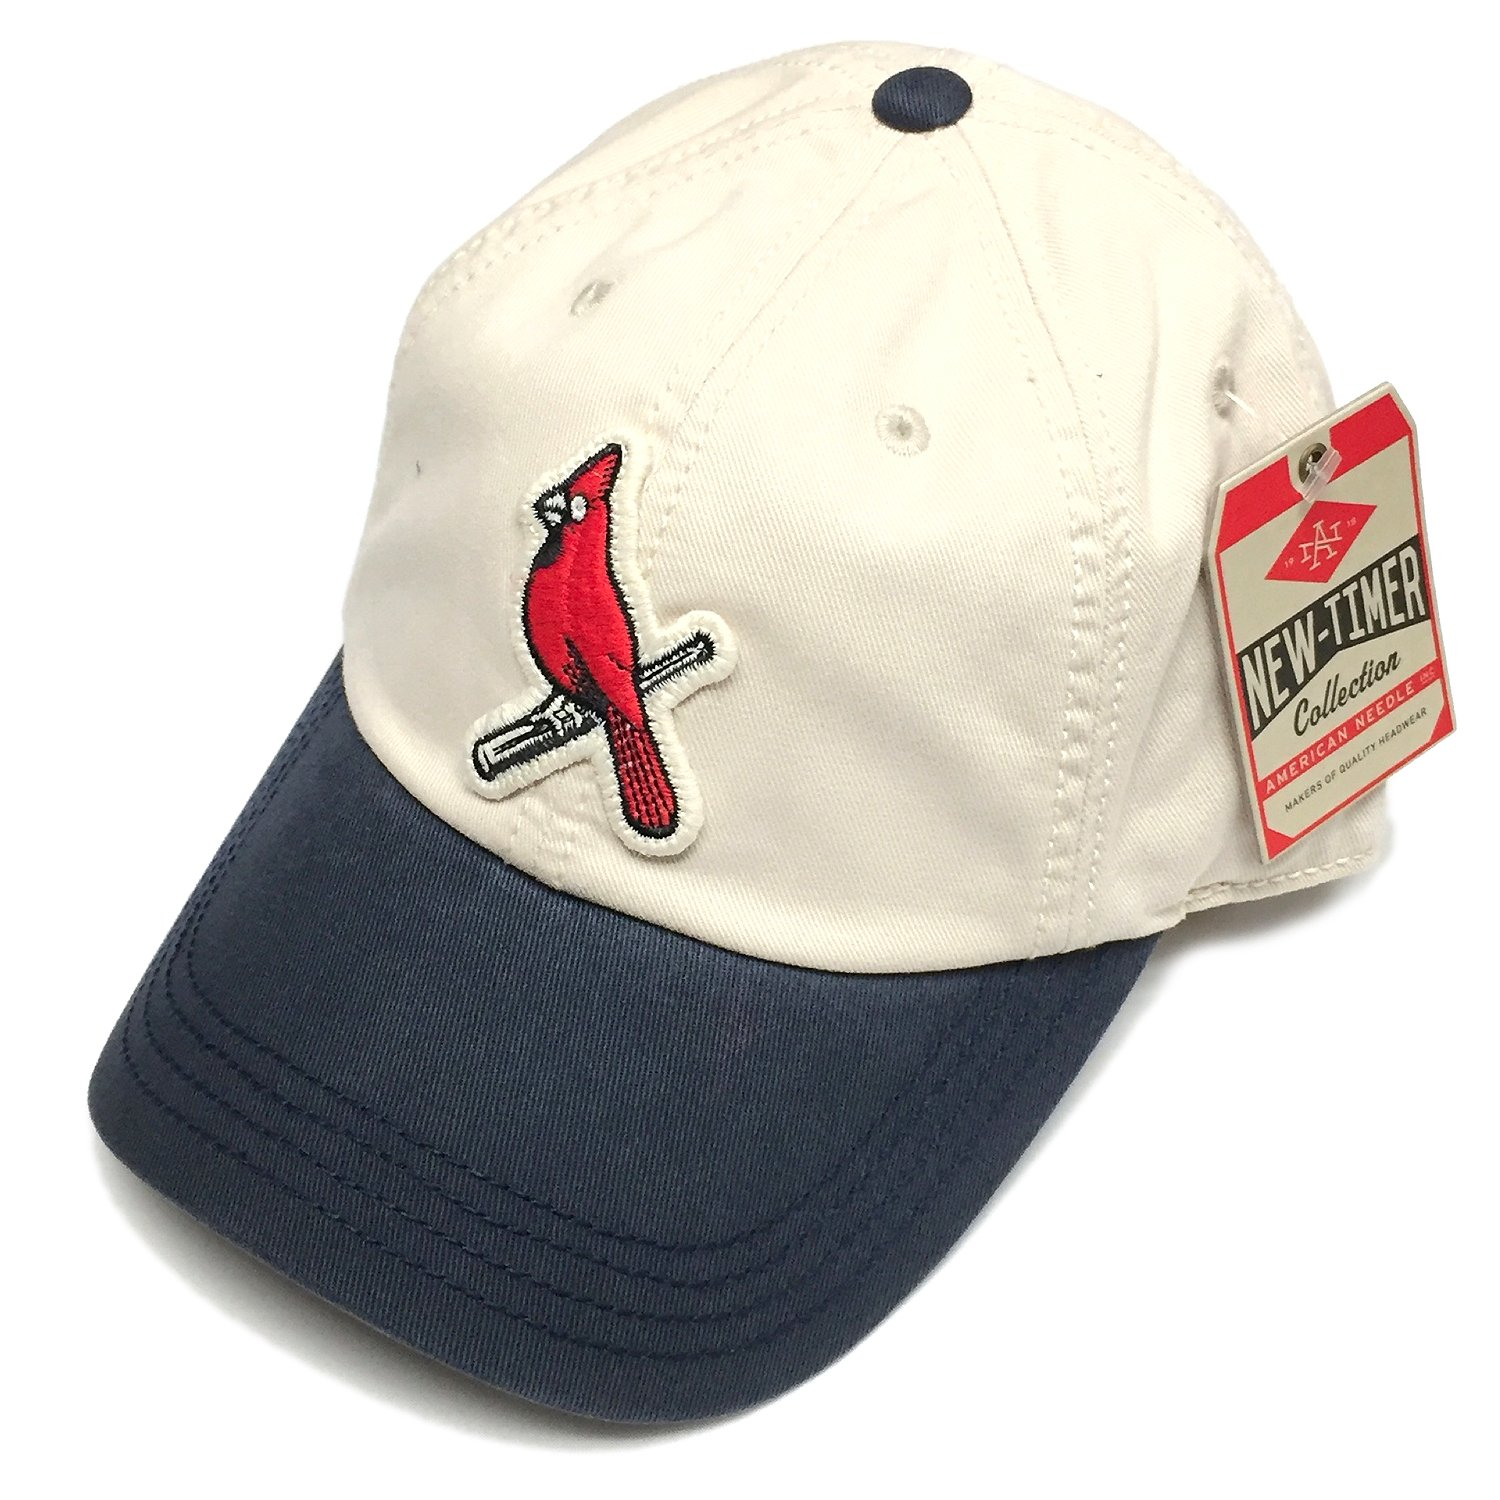 a77895102b0 Get Quotations · American Needle MLB St. Louis Cardinals New Timer Slouch  Retro Snapback Cap